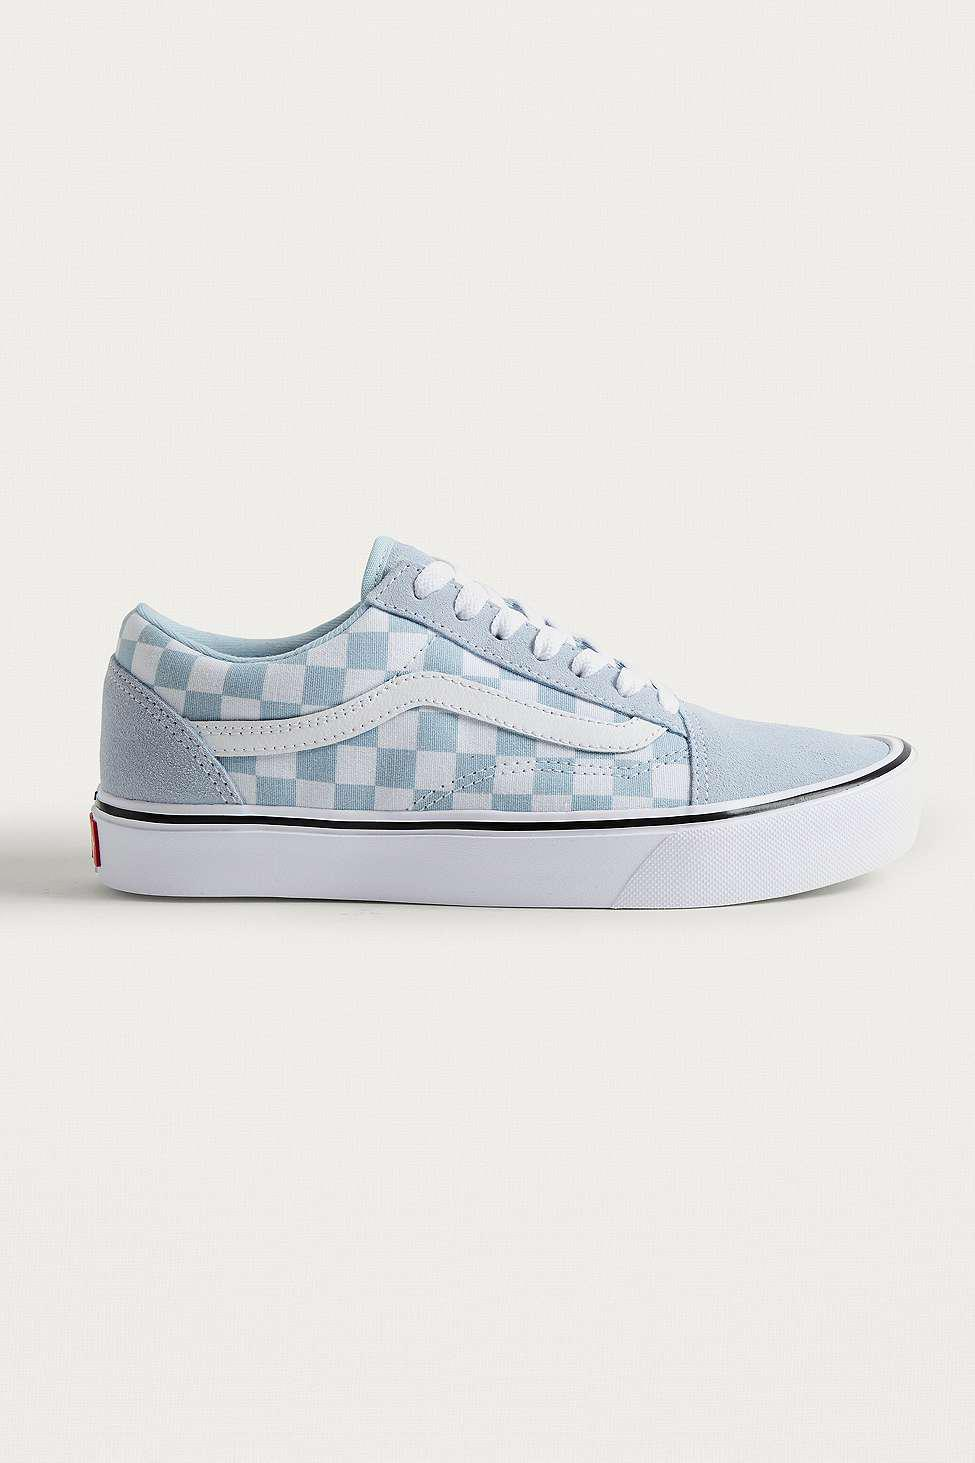 Vans Leather Old Skool Light Blue Checkerboard Trainers Lyst